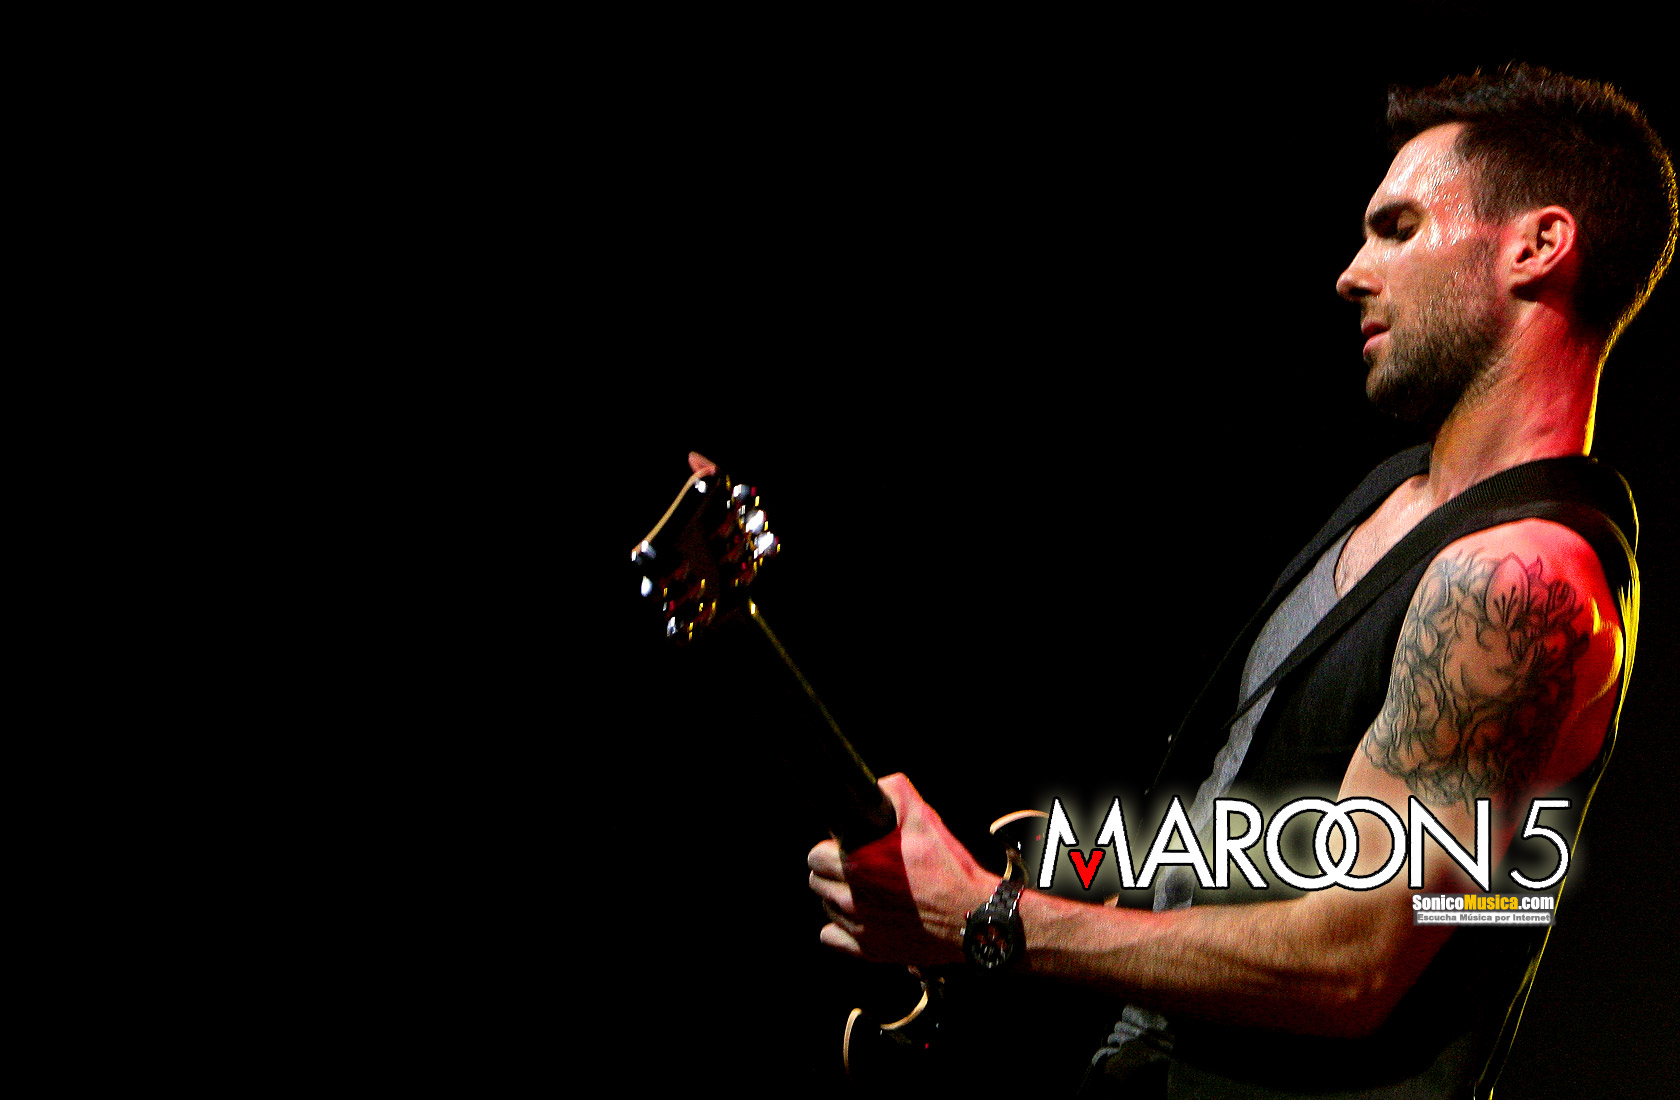 Maroon  Songs About Jane  Music  Entertainment Background 1680x1100